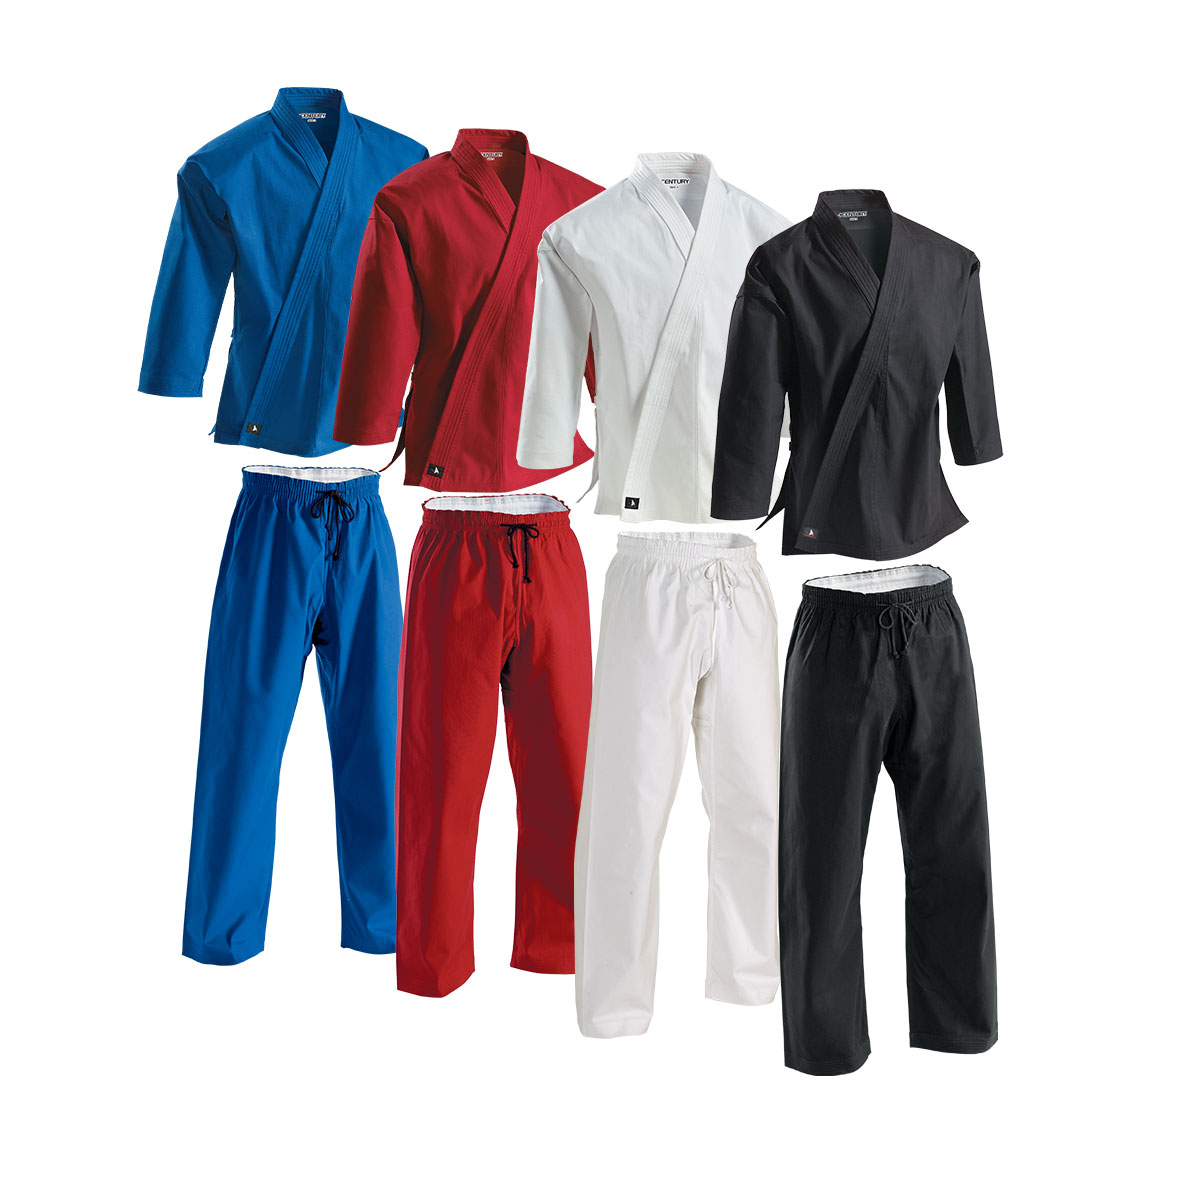 Karate Uniform - Middleweight